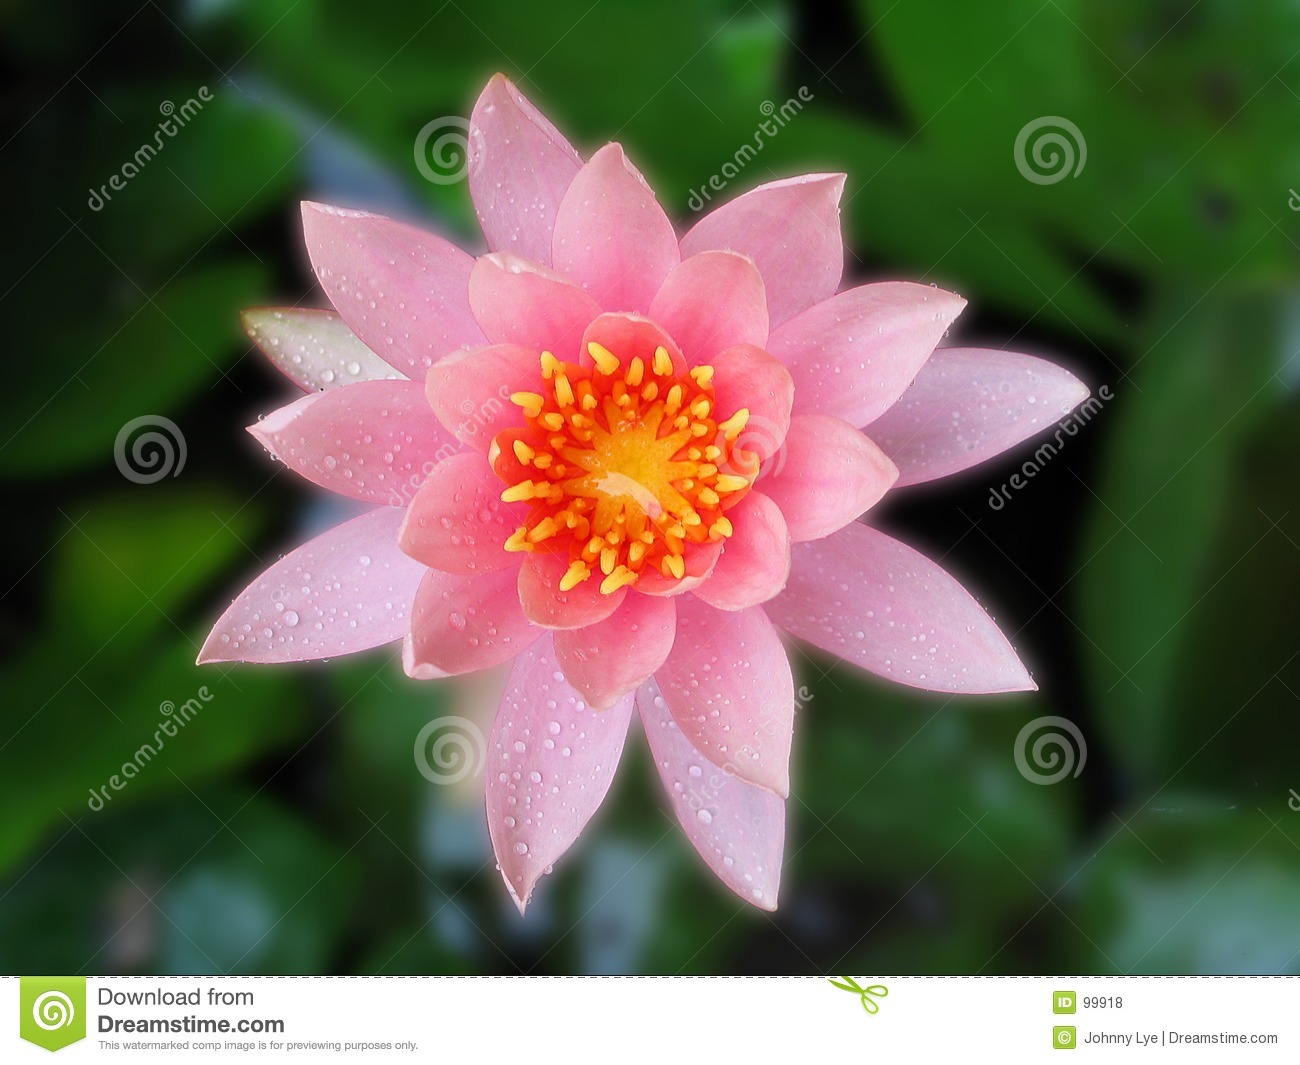 lotus flower royalty free stock photos  image, Beautiful flower